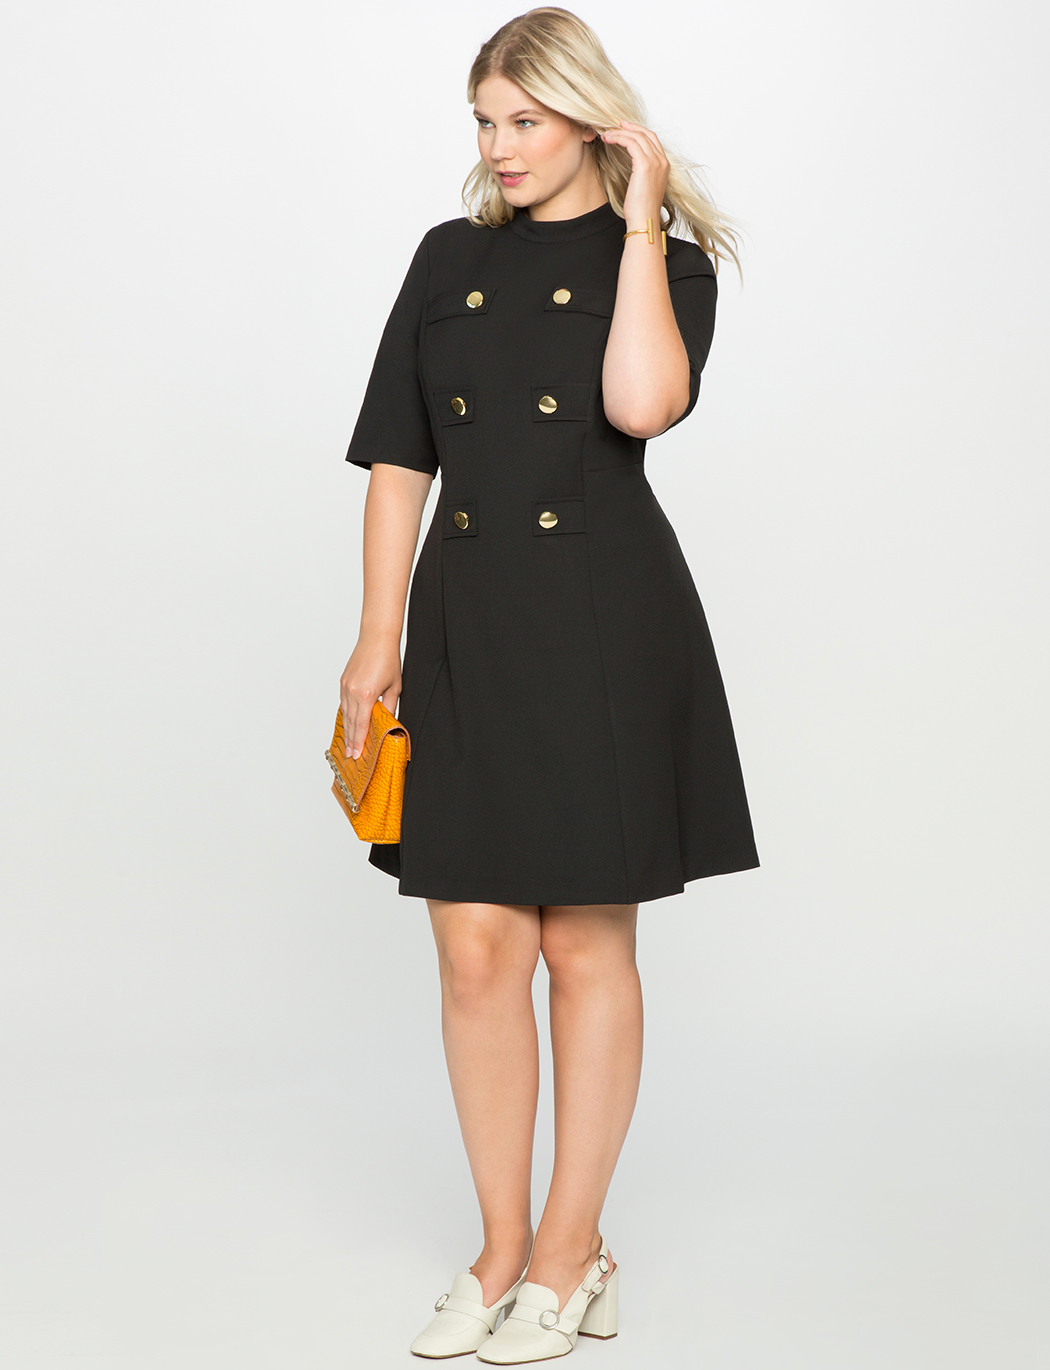 ELOQUII black military style dress with buttons, product 1243960